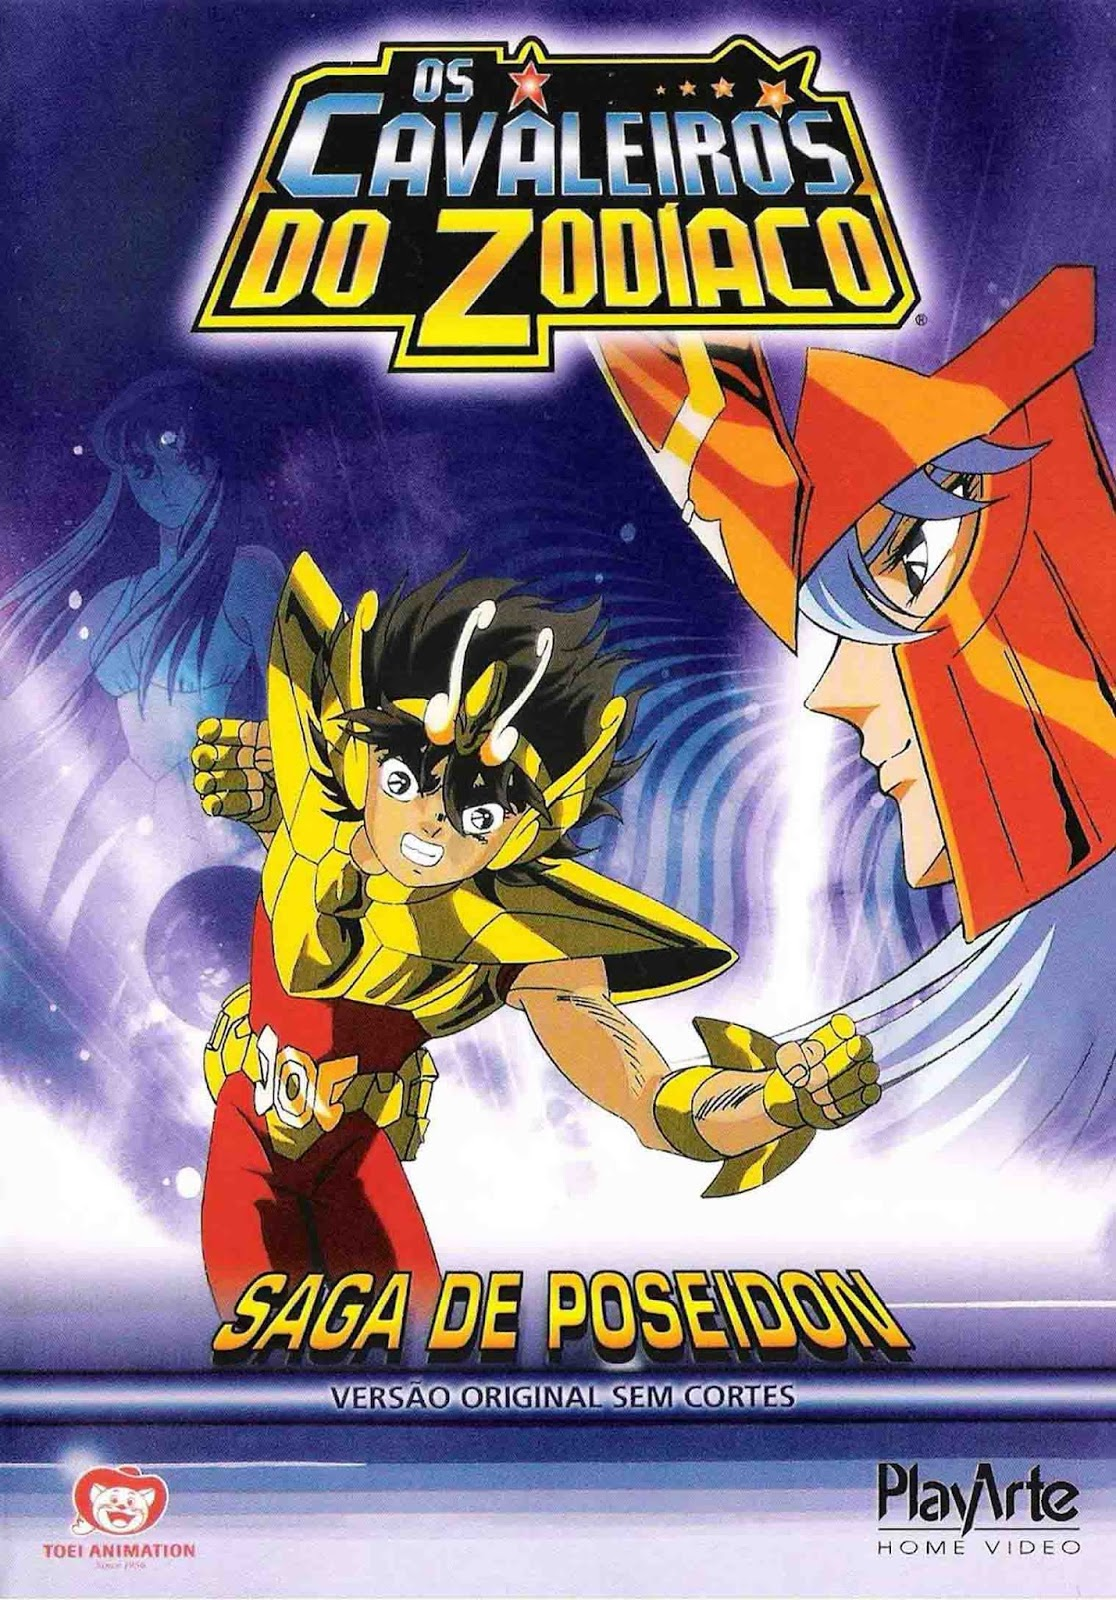 Os Cavaleiros do Zodíaco: Saga de Poseidon - Parte 2 Torrent - BluRay 1080p Dual Áudio